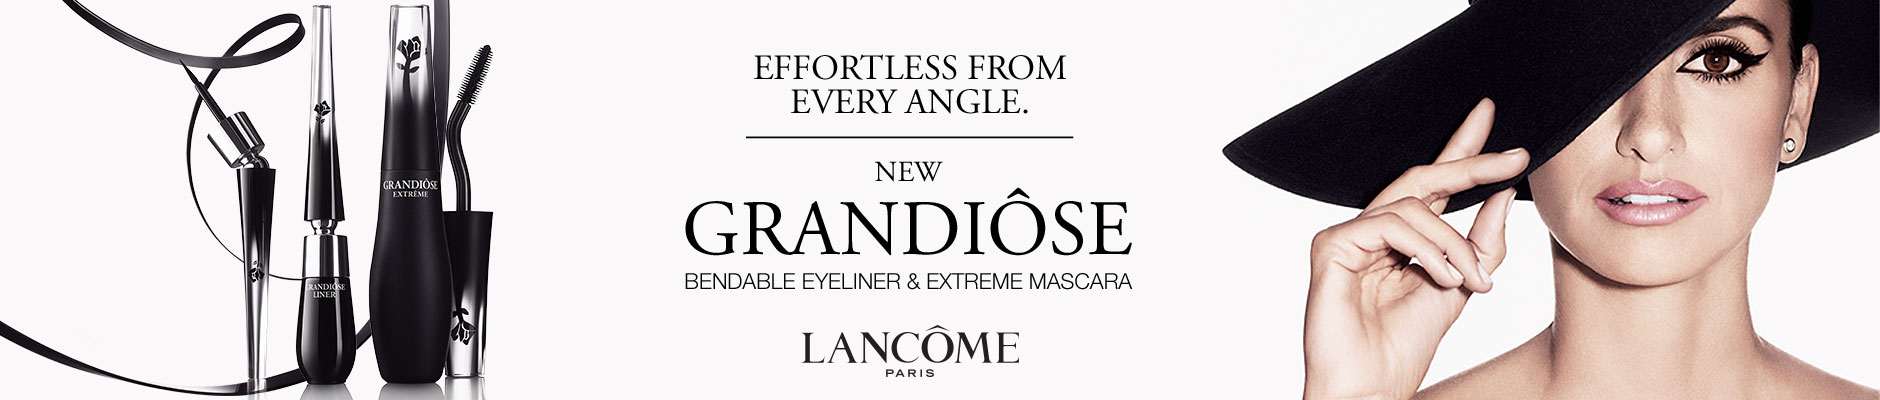 Effortless From Every Angle: New Grandiose Bendable Eyeliner & Extreme Mascara - Lancome Paris